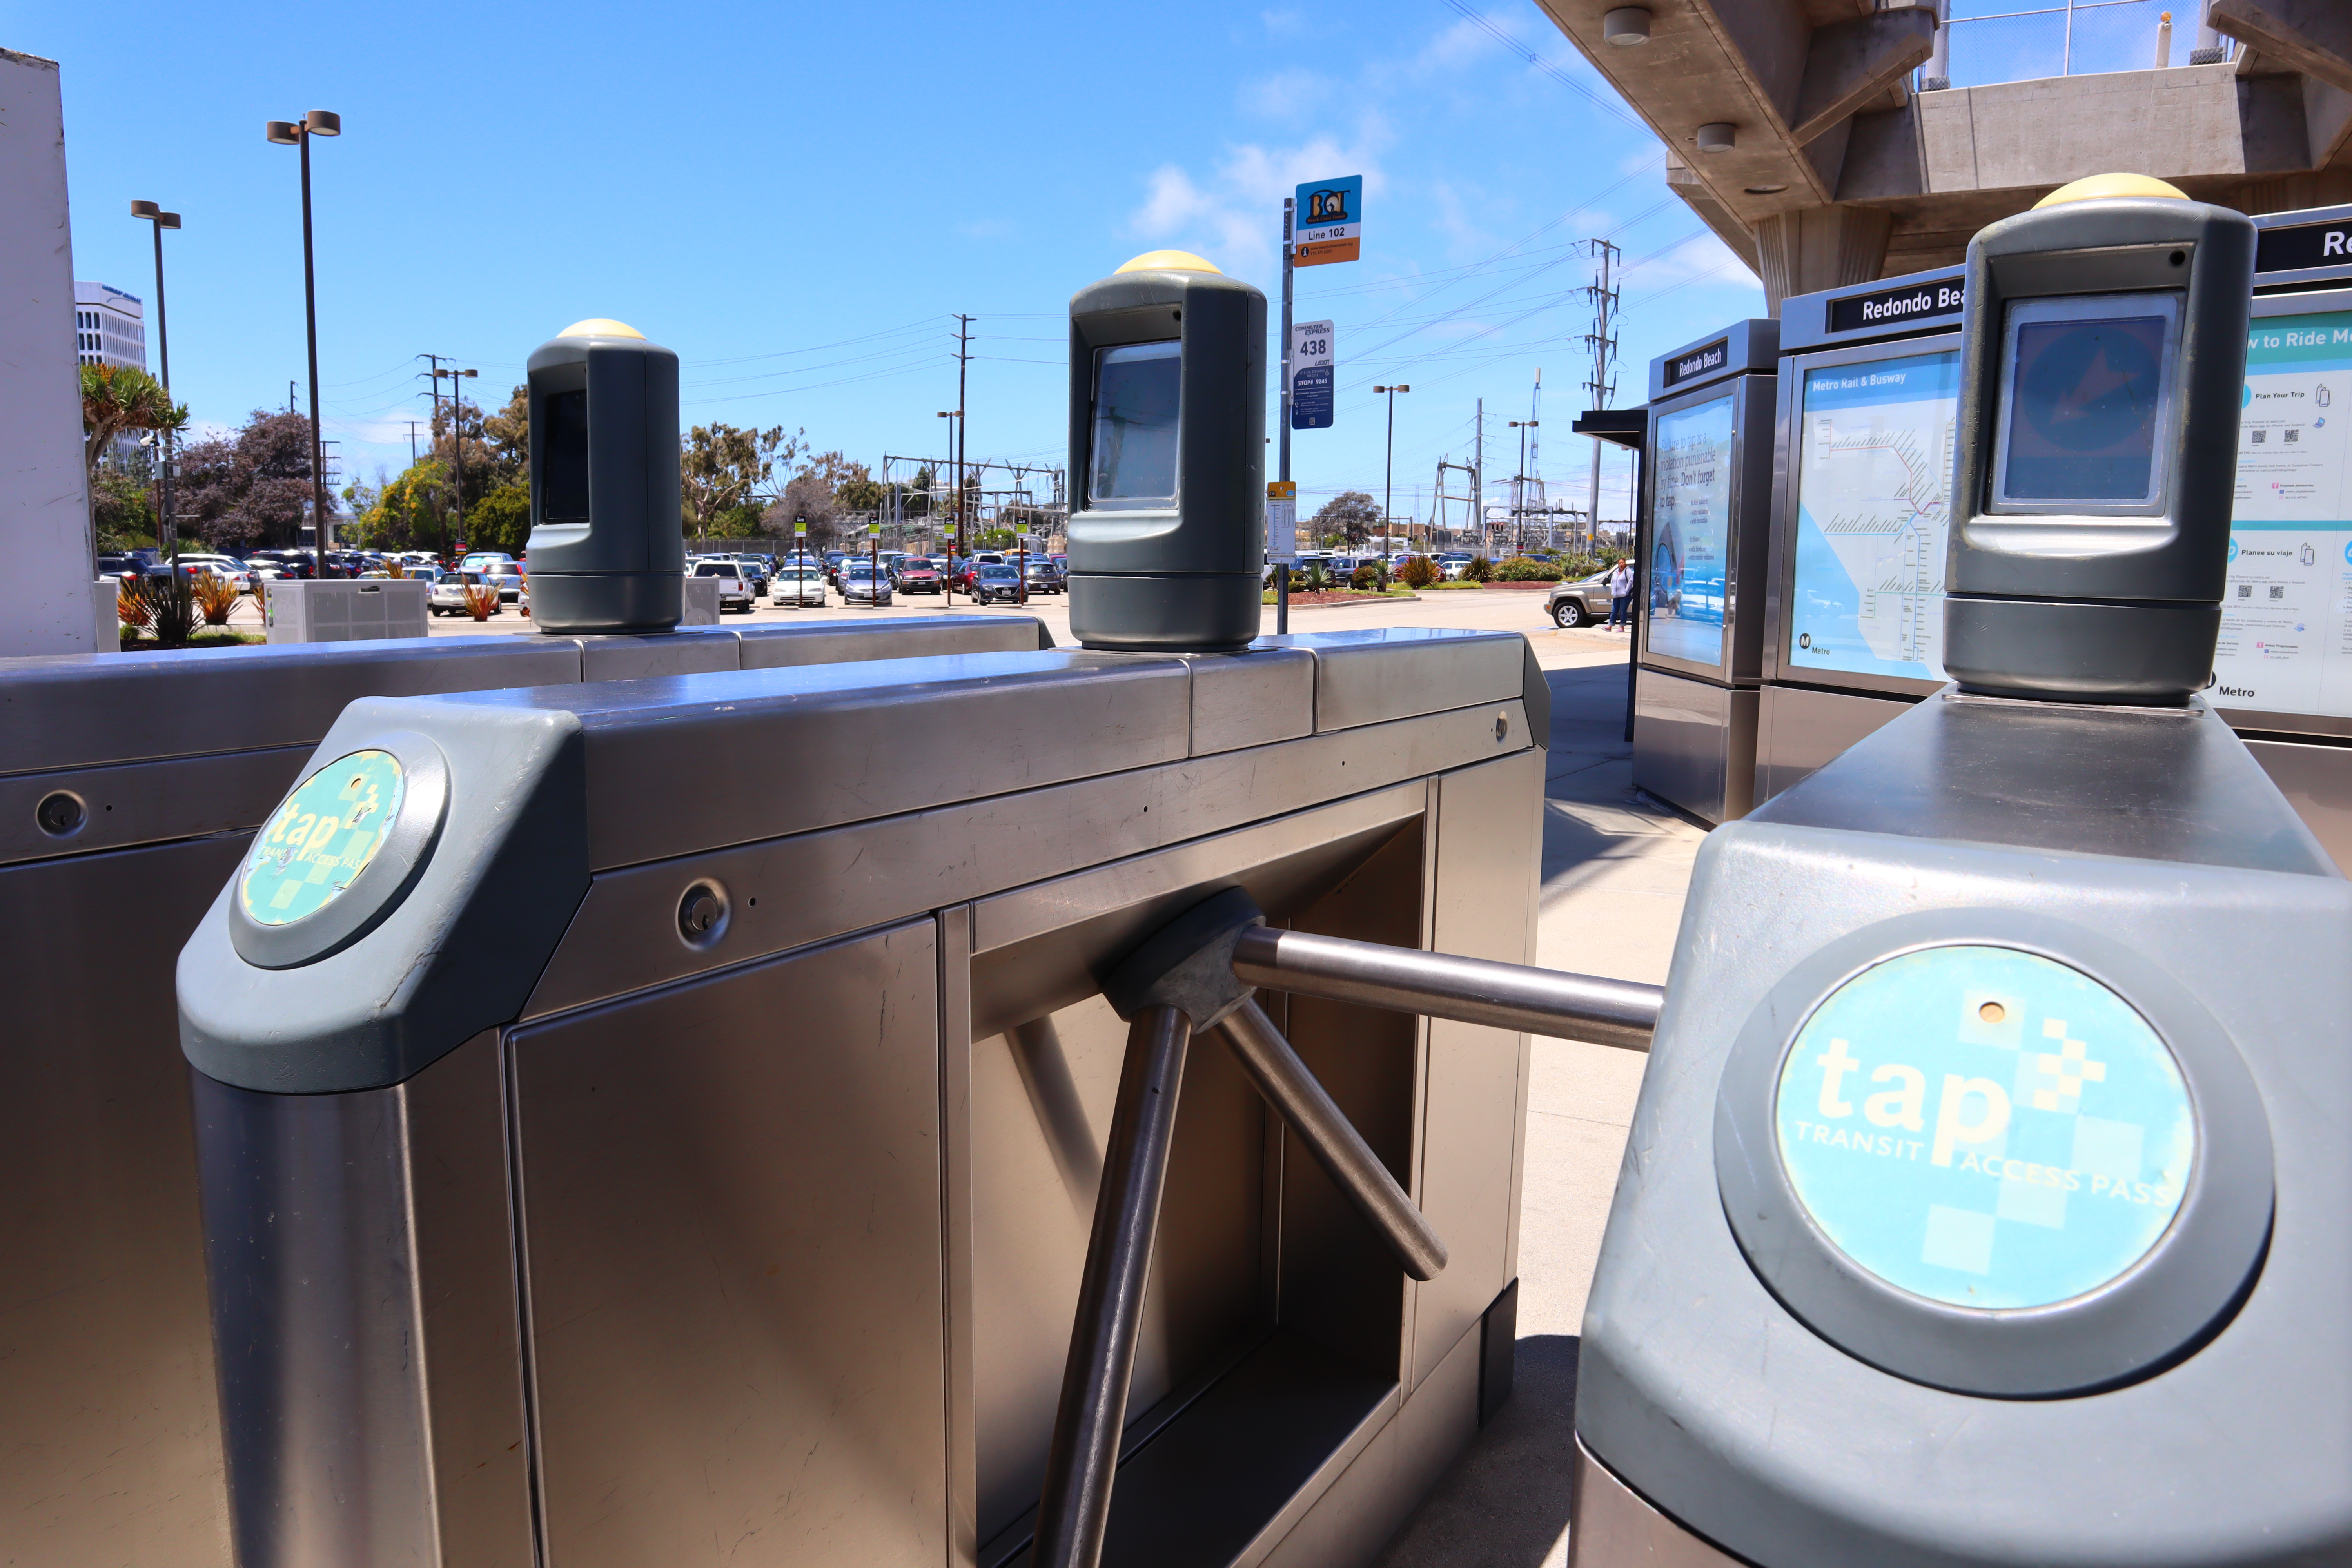 This winter, you'll be able to pay for Metro rides with your phone